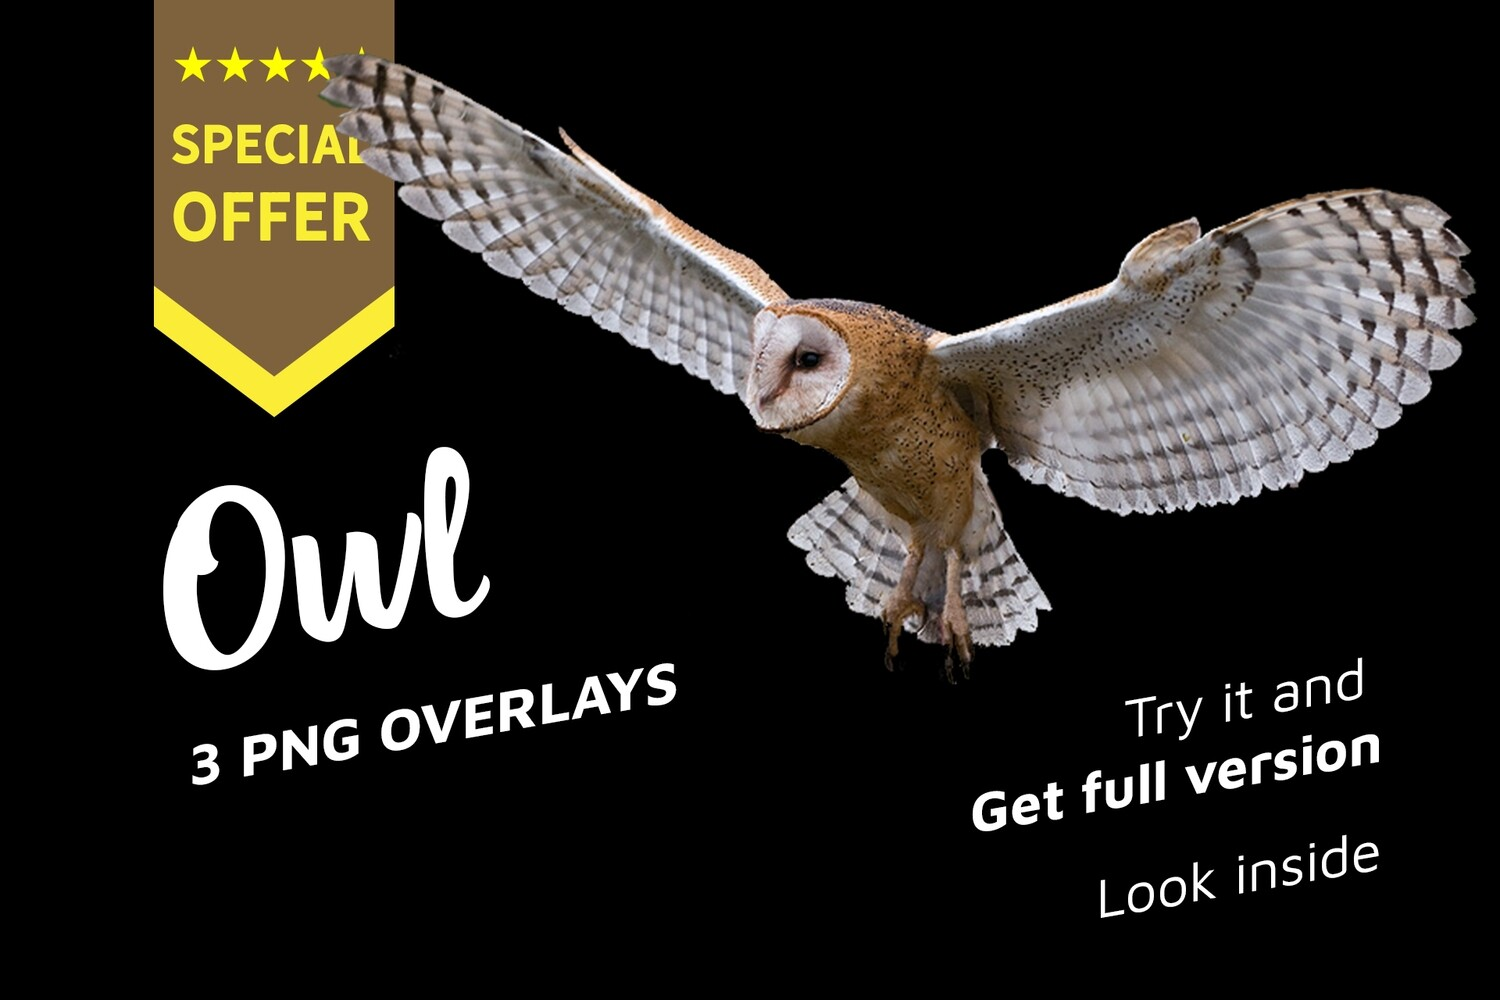 7 Owl Photo Overlays